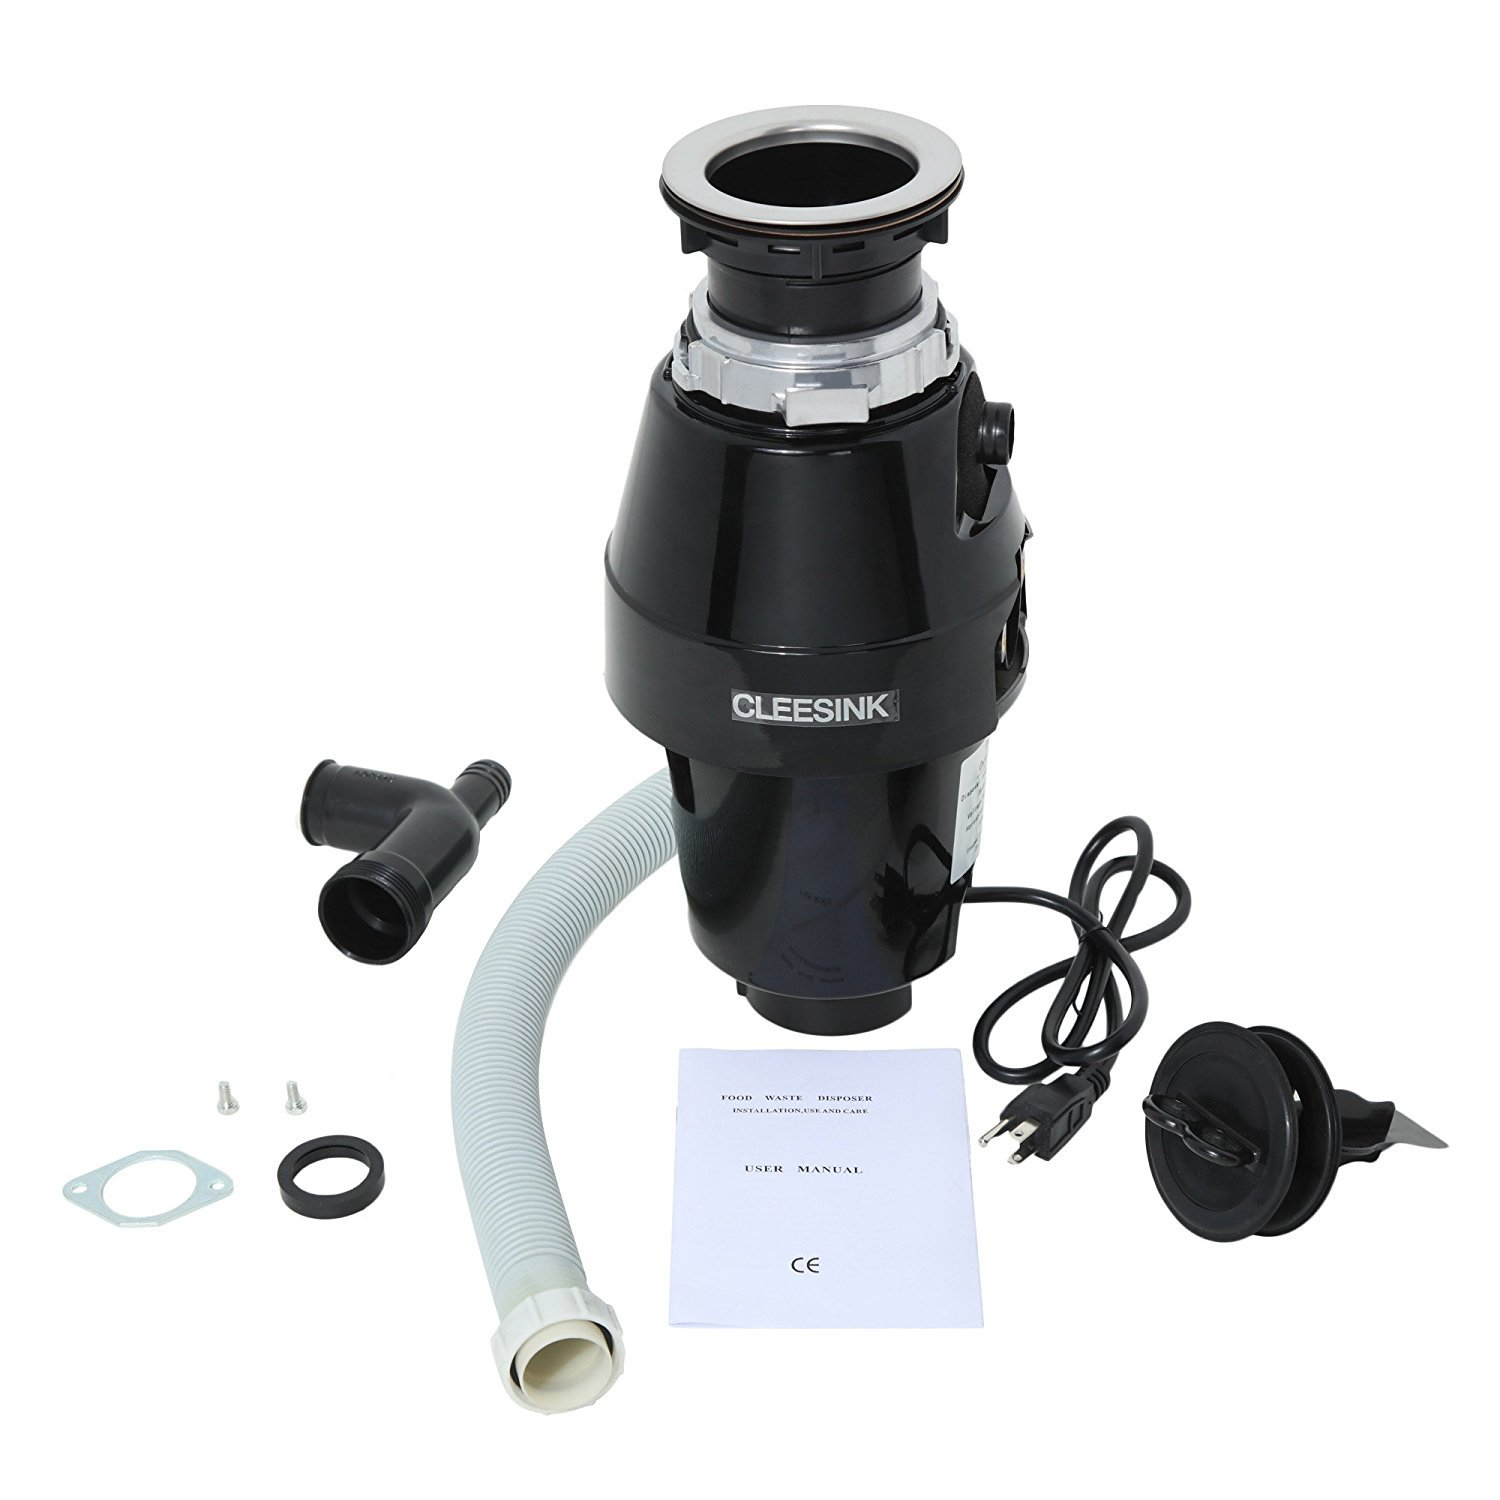 Cleesink 1/2 HP Food Waste Disposal, Kitchen Continuous Feed Garbage Disposal, 0.5 Horsepower, DC motor by CLEESINK (Image #2)